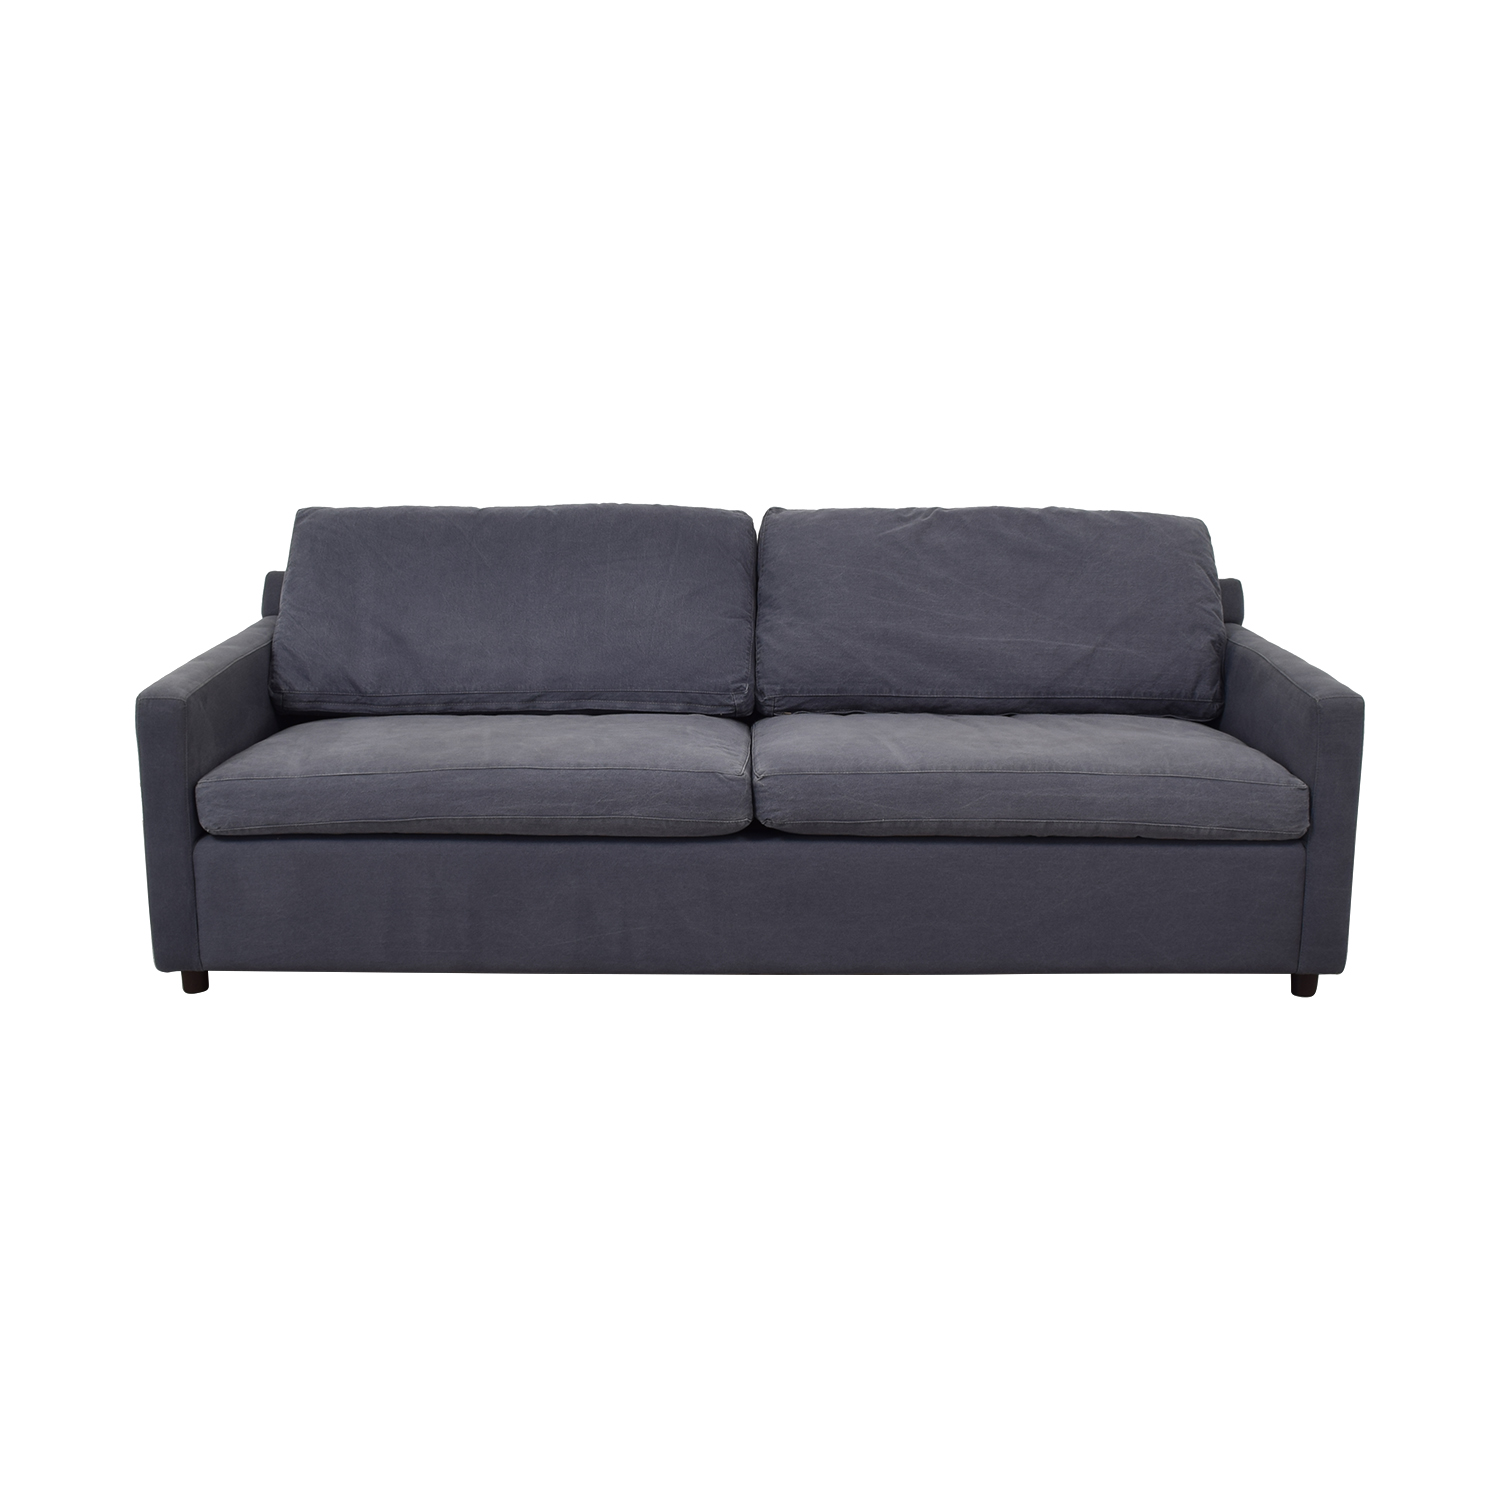 shop ABC Carpet & Home Cobble Hill Lucali Sofa ABC Carpet & Home